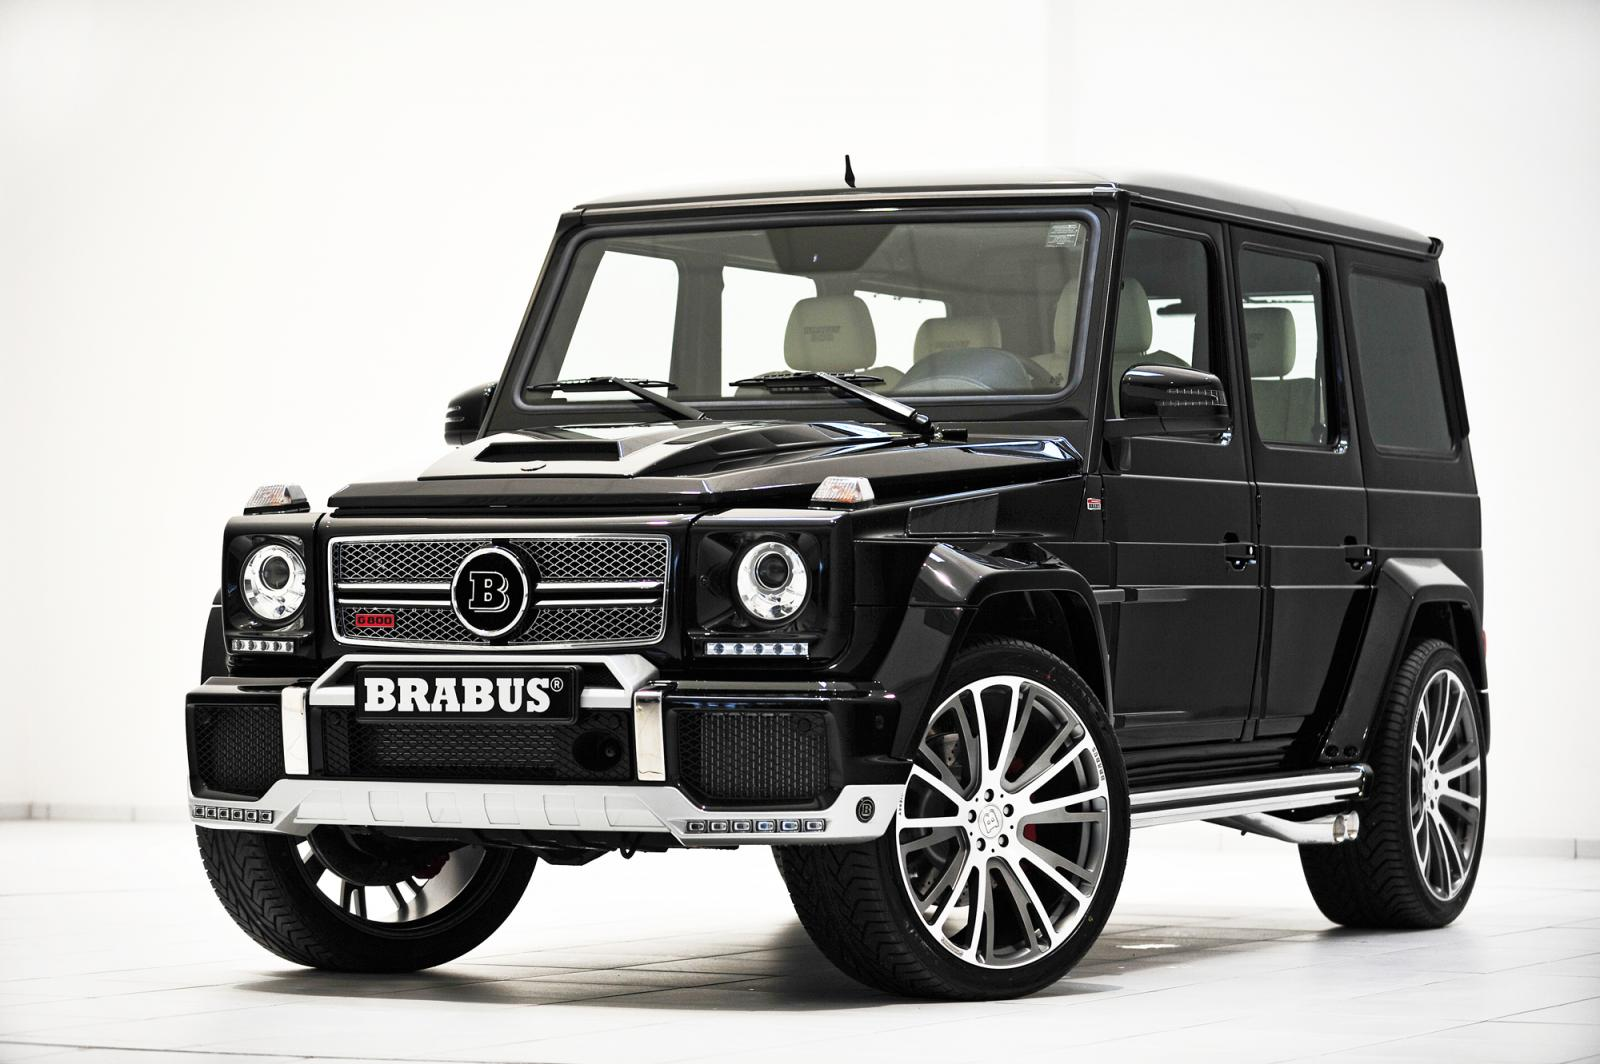 2013 brabus widestar 800 based on mercedes g65 amg for Mercedes benz g wagon v12